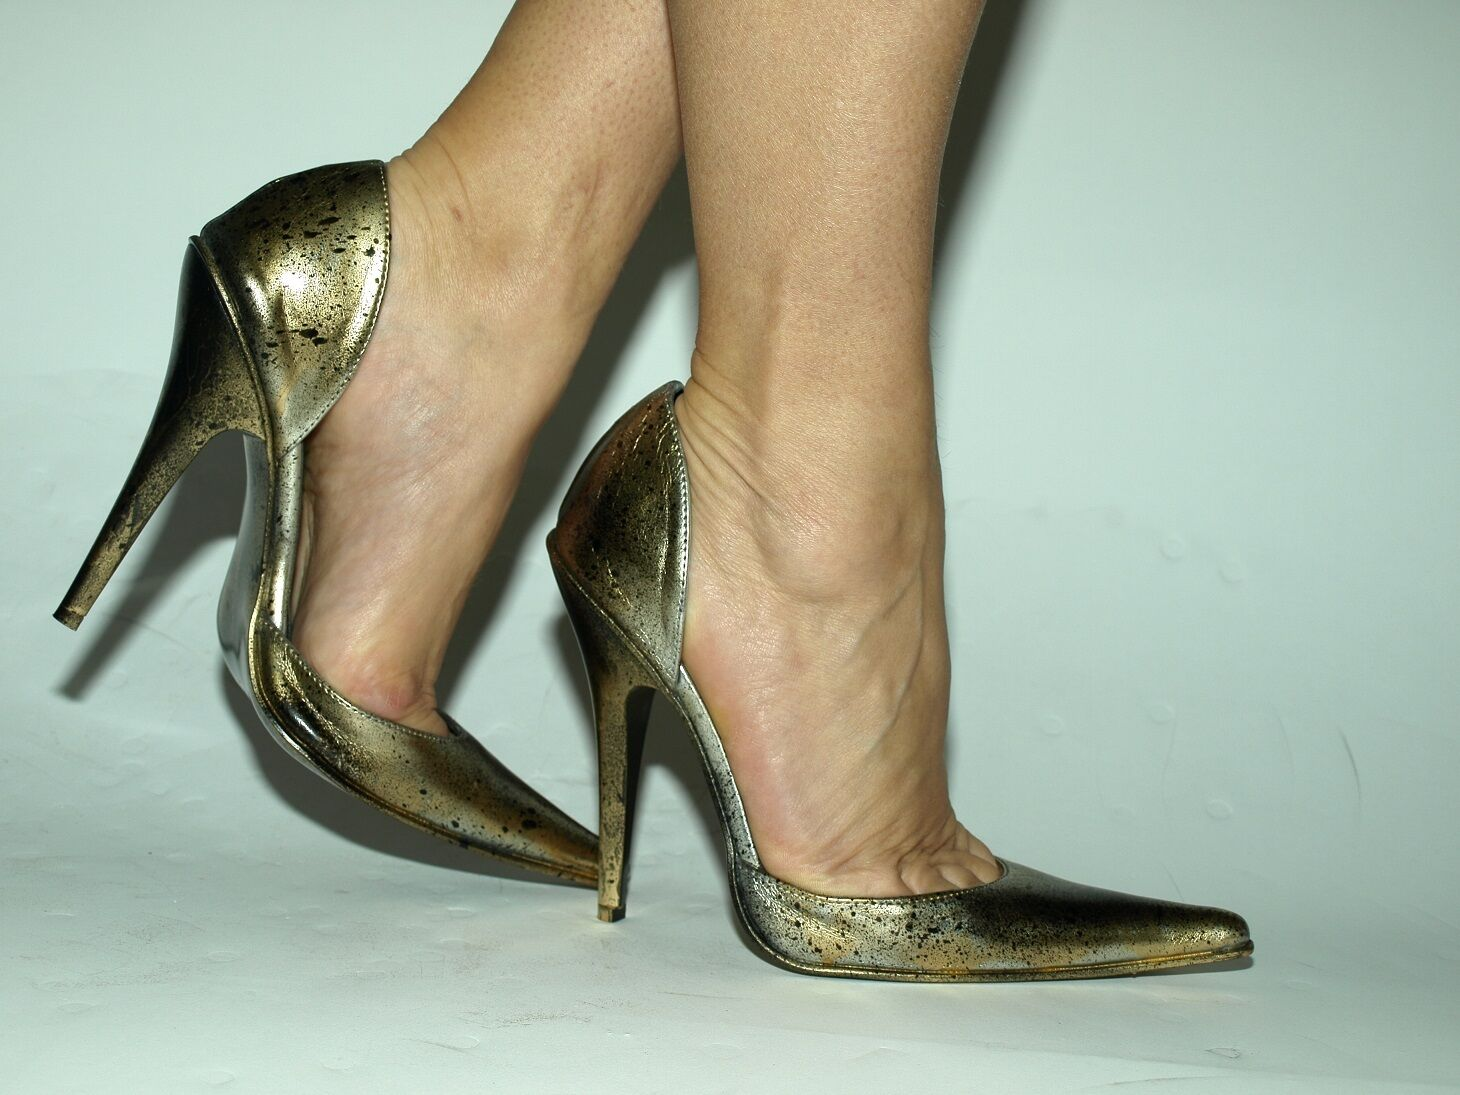 PATENT LEATHER noir or PUMPS Taille 5-16 HEELS-5,5'- PRODUCER POLAND FS 1498